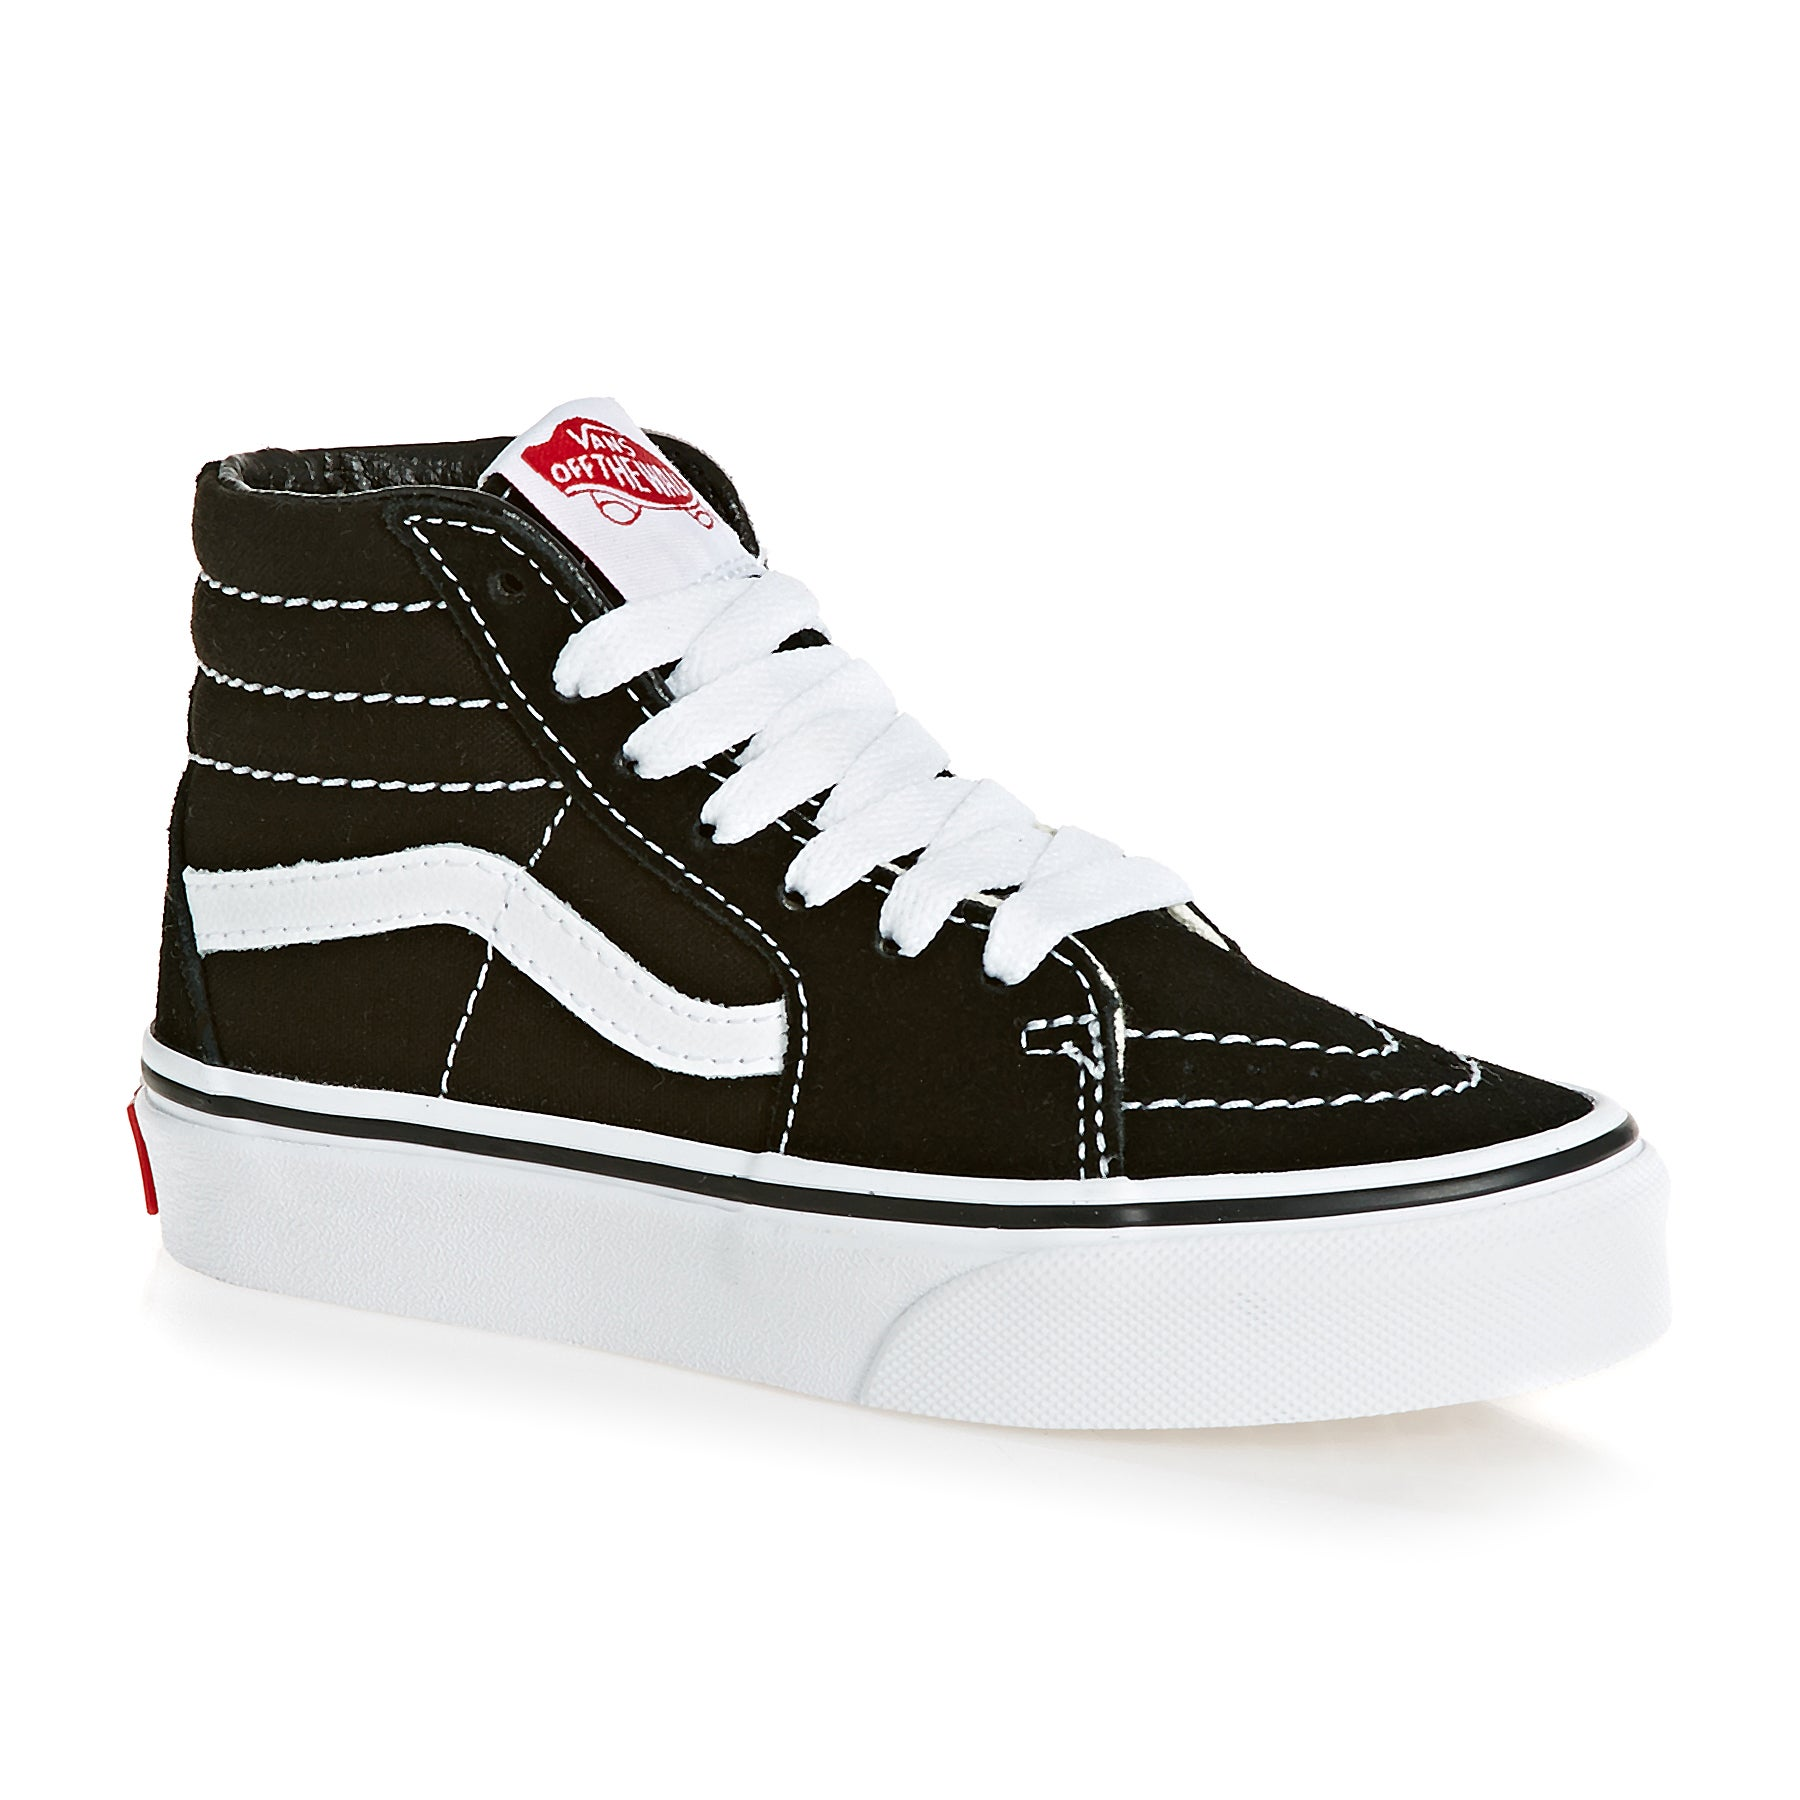 Vans SK8 Hi Kids Shoes - Black True White